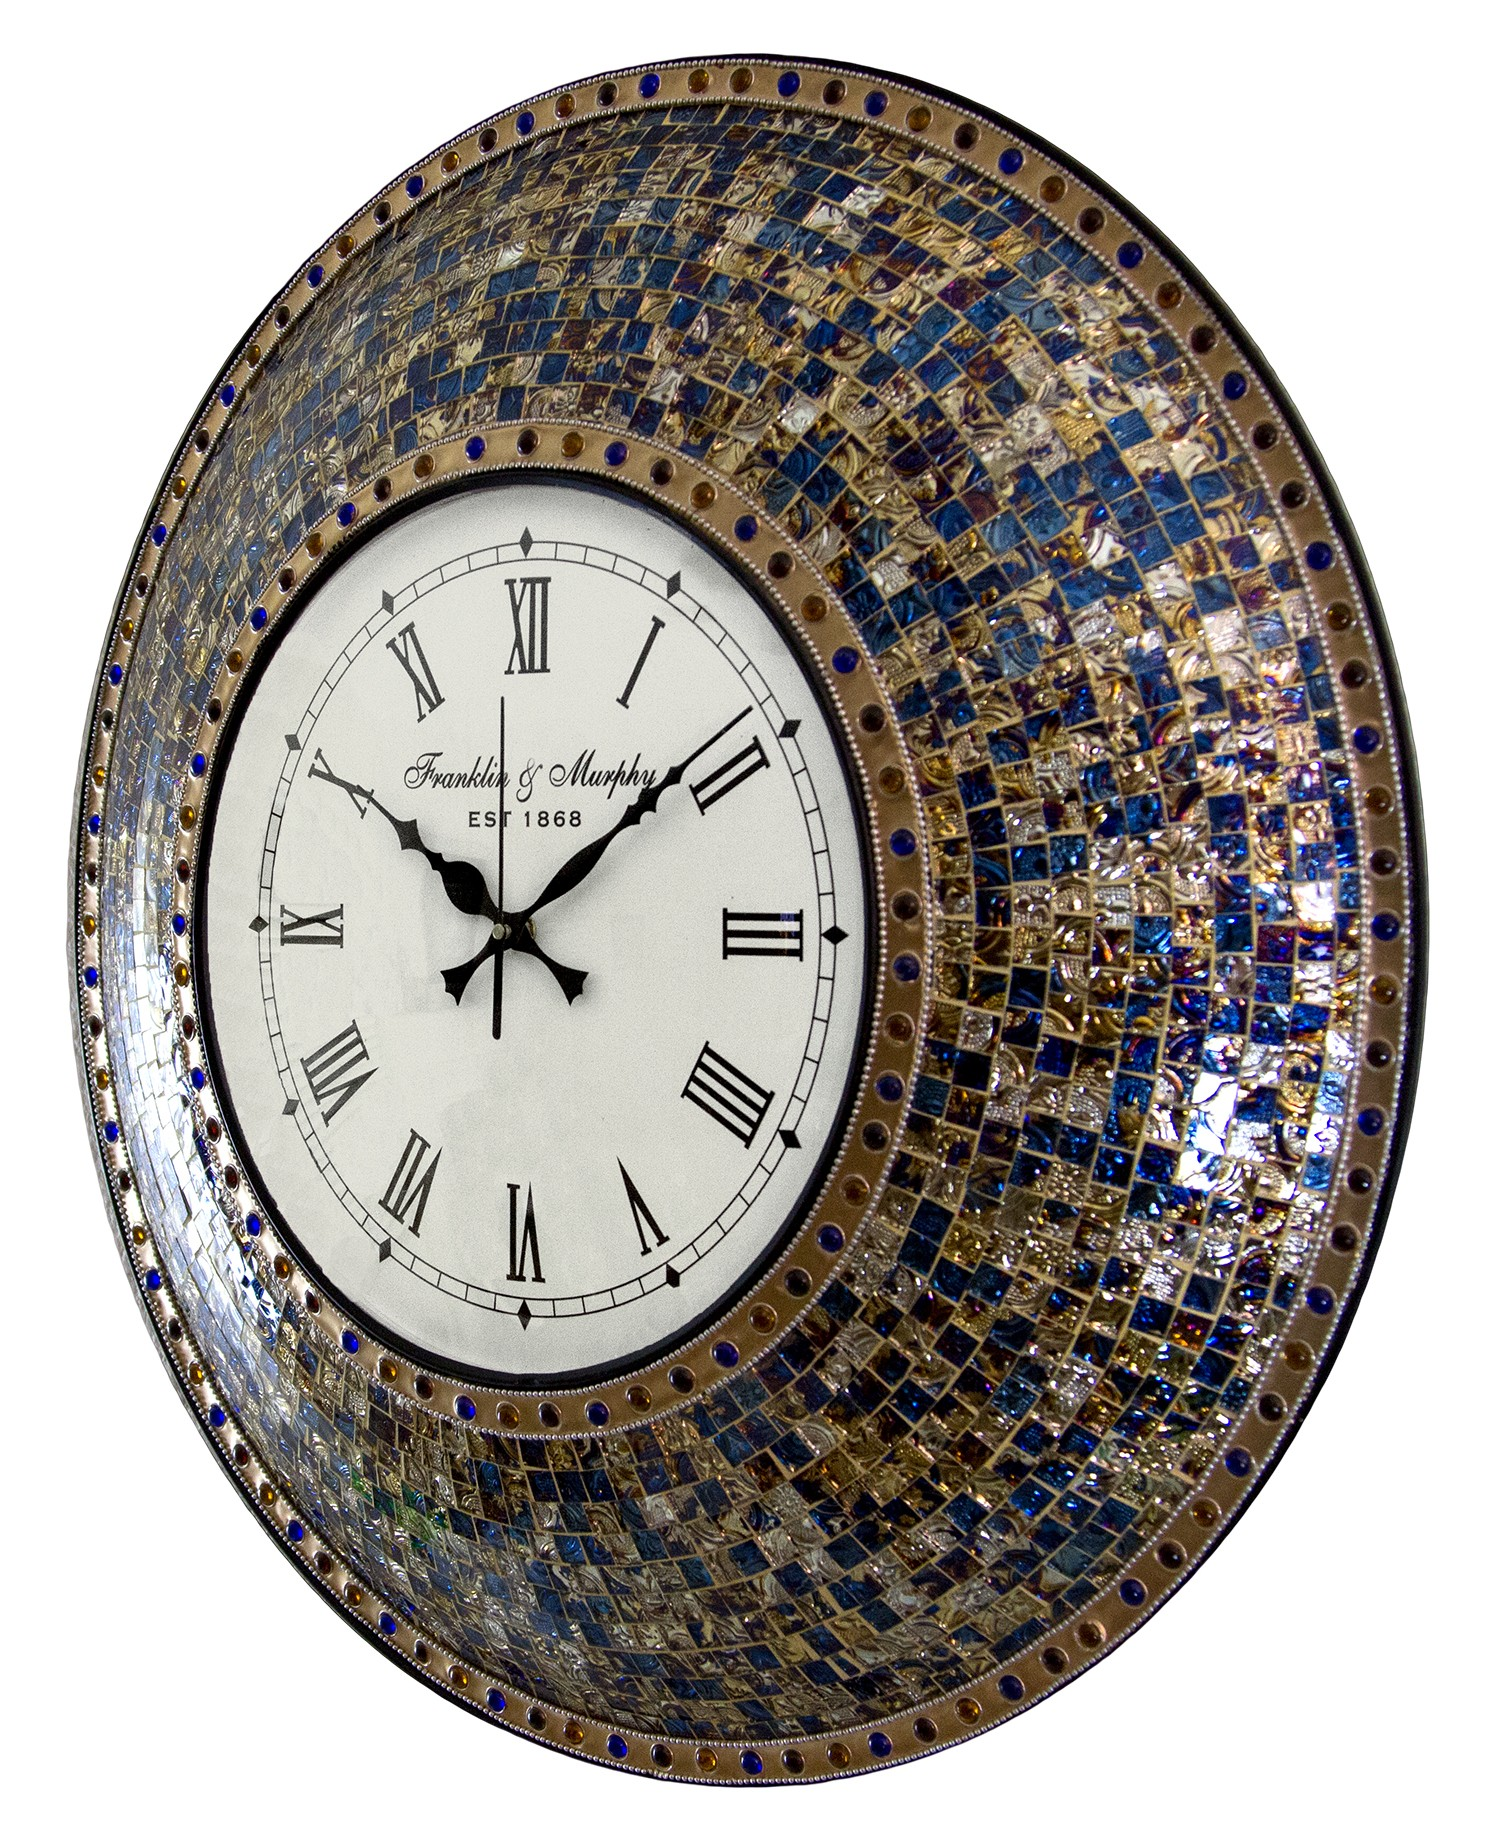 Buy 225 fired gold handmade glass mosaic wall clock online buy 225 fired gold handmade glass mosaic wall clock online decorshore amipublicfo Gallery